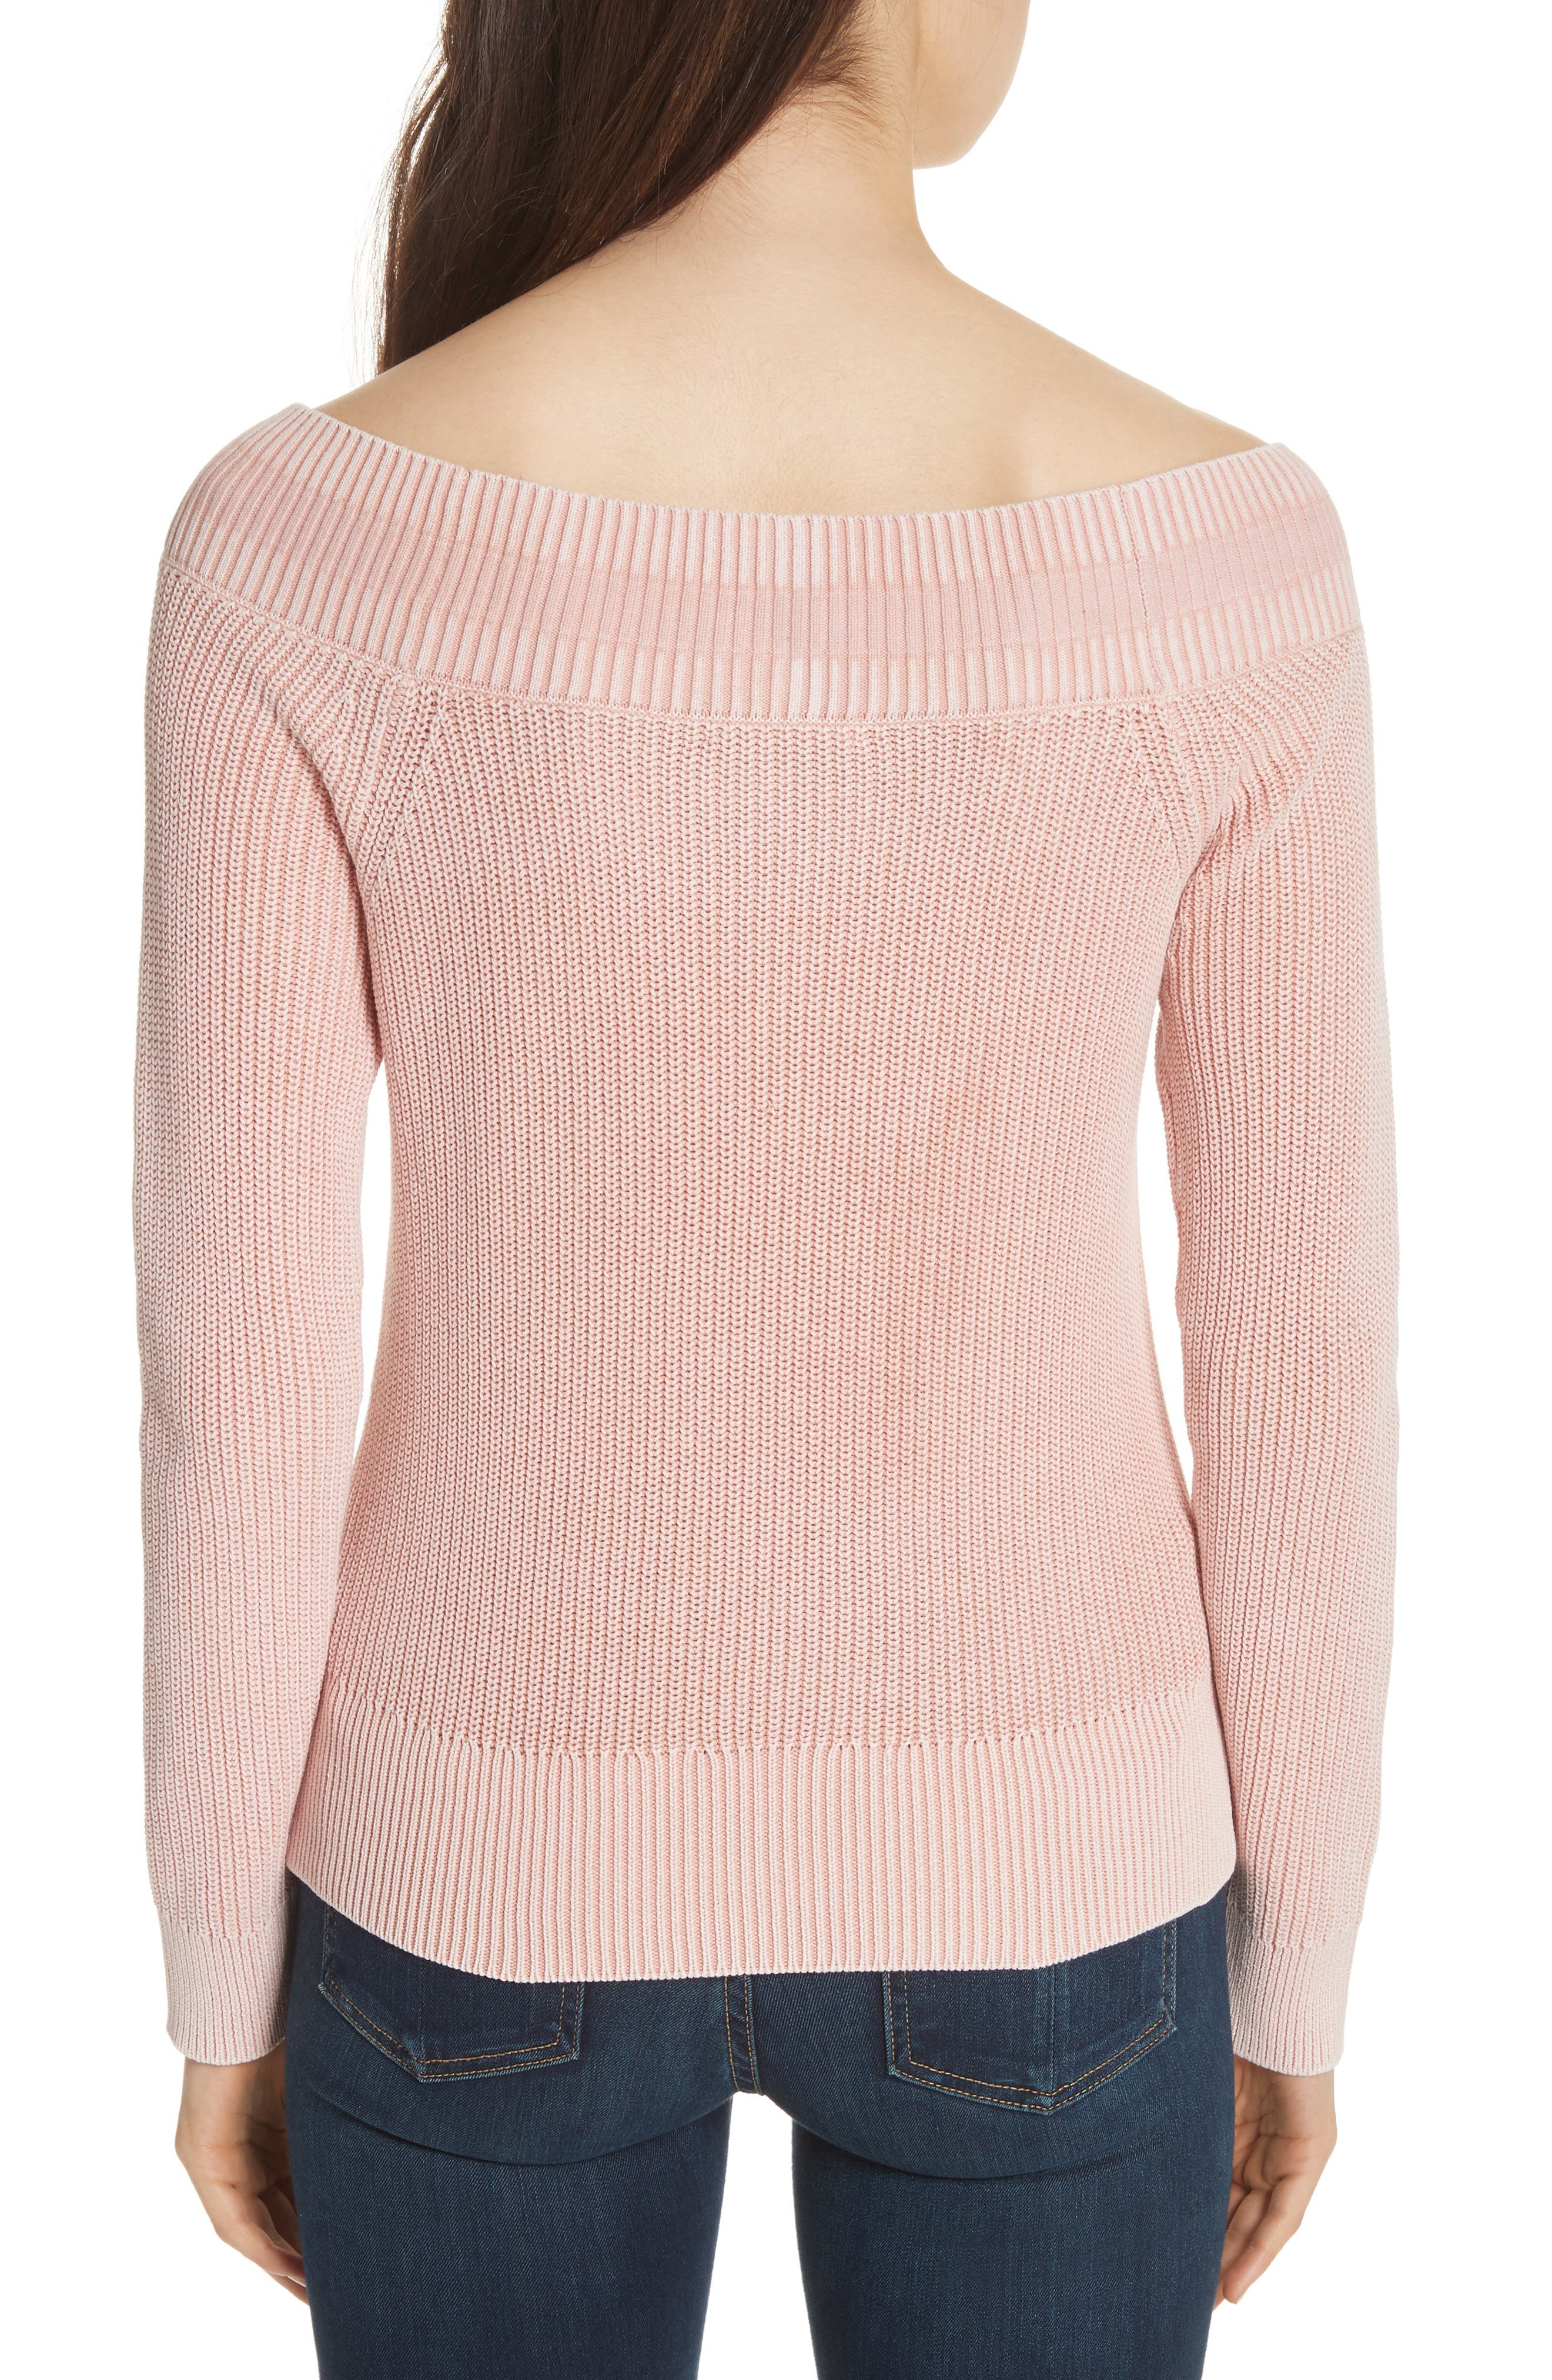 Dawn Off the Shoulder Knit Top,                             Alternate thumbnail 2, color,                             Pink